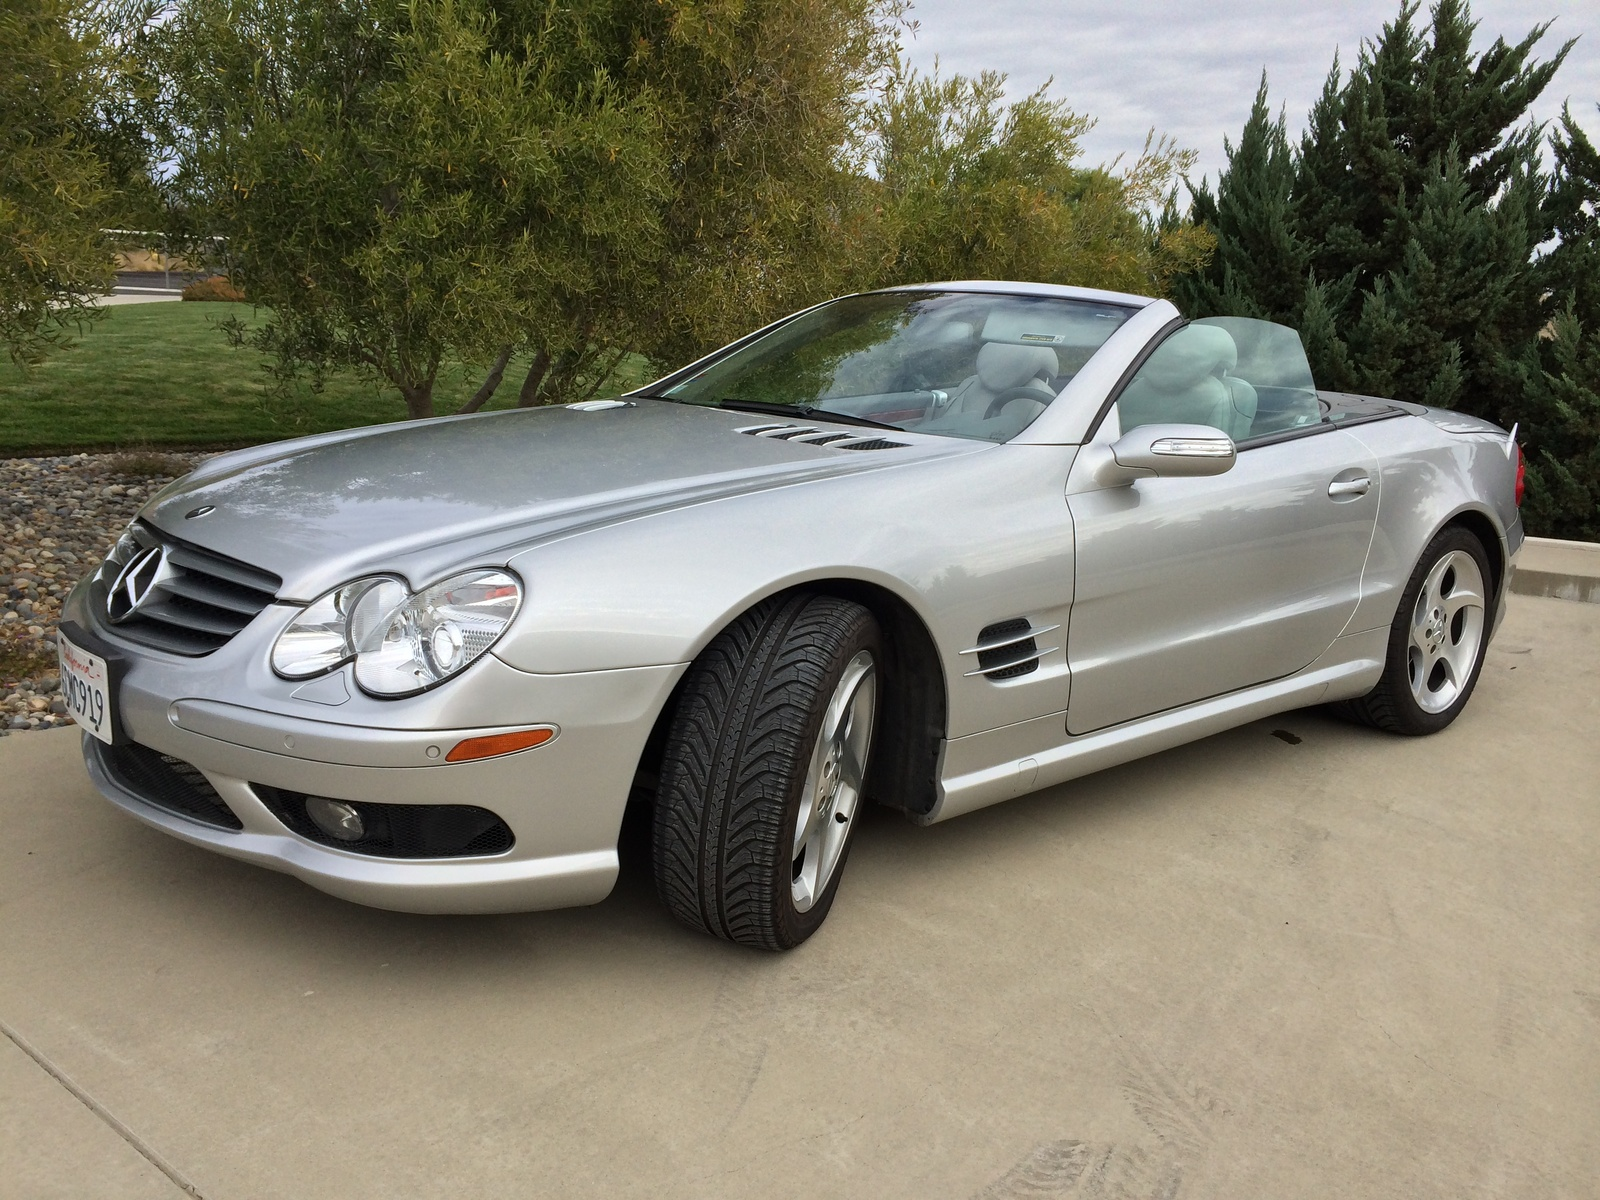 2005 mercedes benz sl class pictures cargurus for Mercedes benz sl convertible